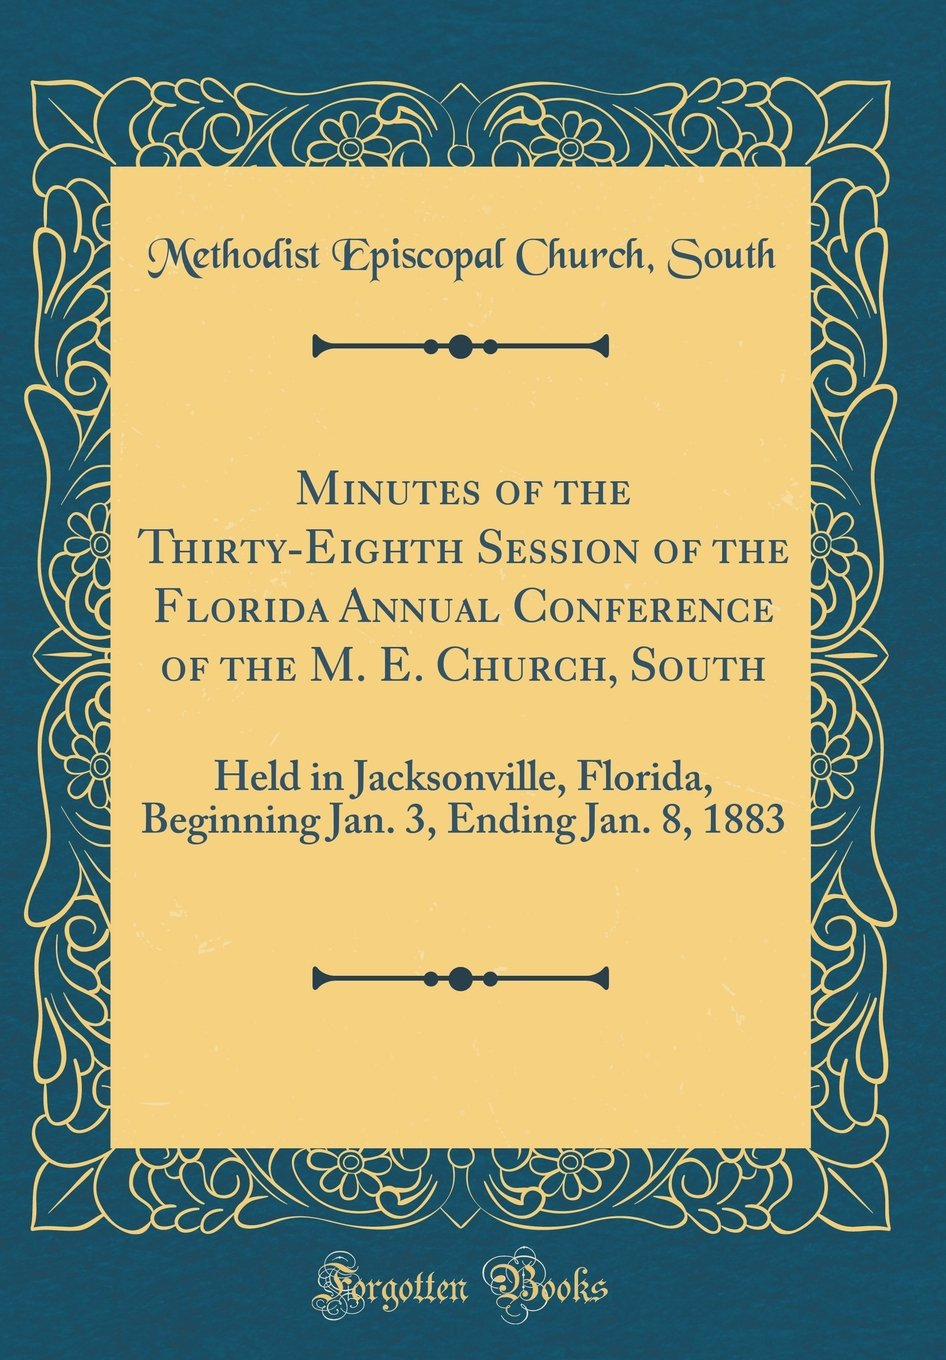 Minutes of the Thirty-Eighth Session of the Florida Annual Conference of the M. E. Church, South: Held in Jacksonville, Florida, Beginning Jan. 3, Ending Jan. 8, 1883 (Classic Reprint) PDF ePub fb2 book